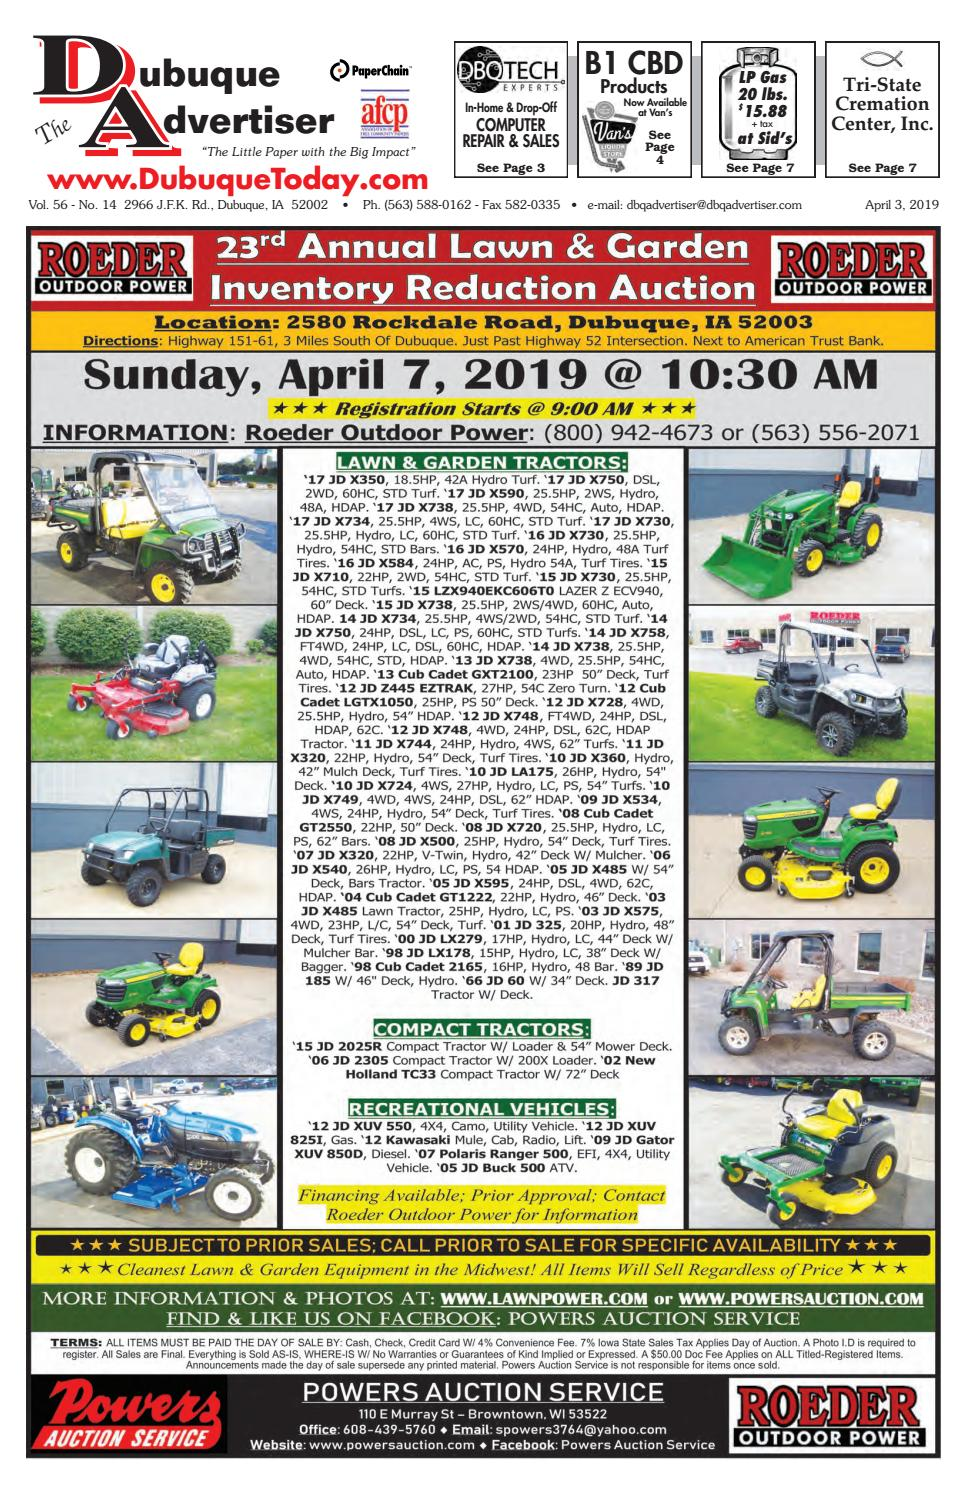 The Dubuque Advertiser April 3, 2019 by The Dubuque Advertiser - issuu